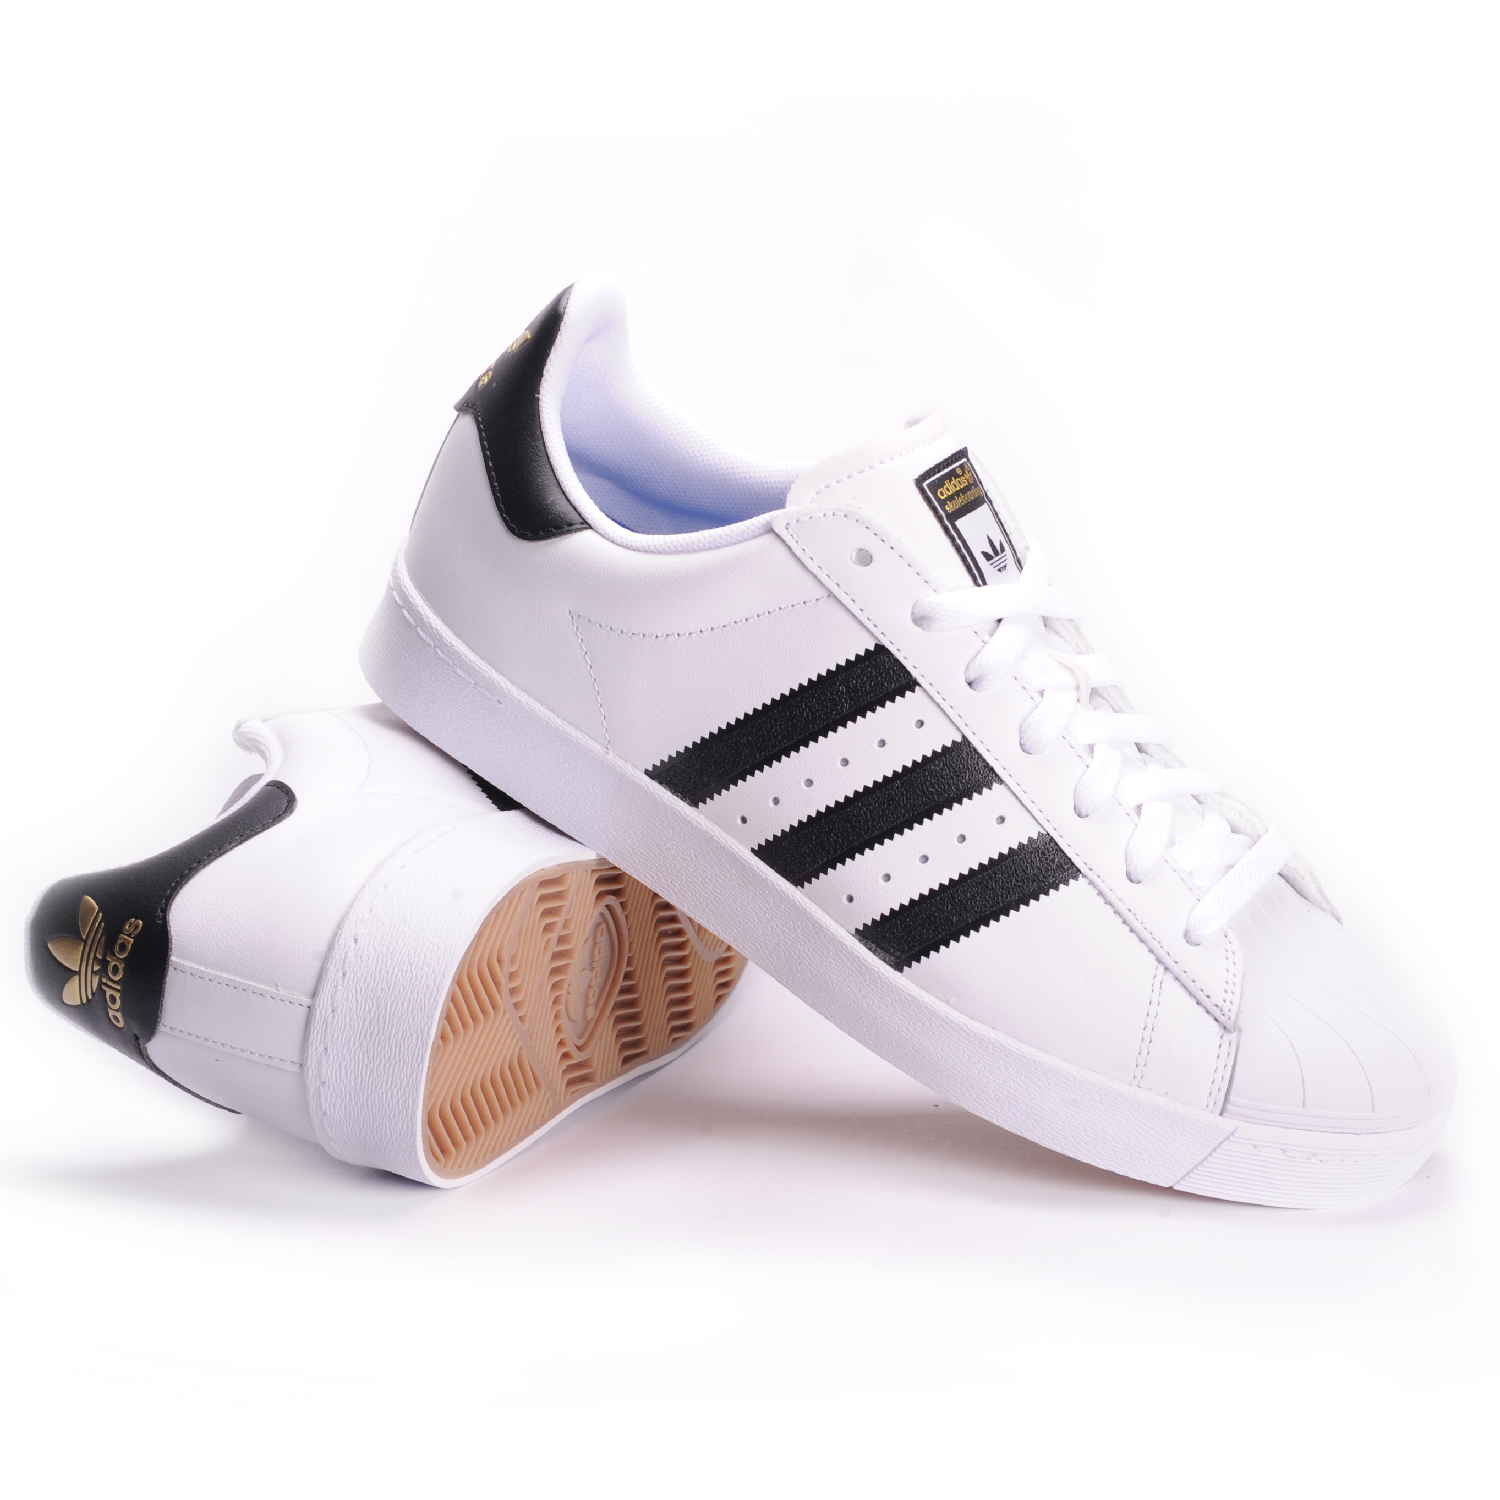 Adidas Superstar Shoes   Buy cheap Adidas shoes online - Clvyall.com 3fece9131